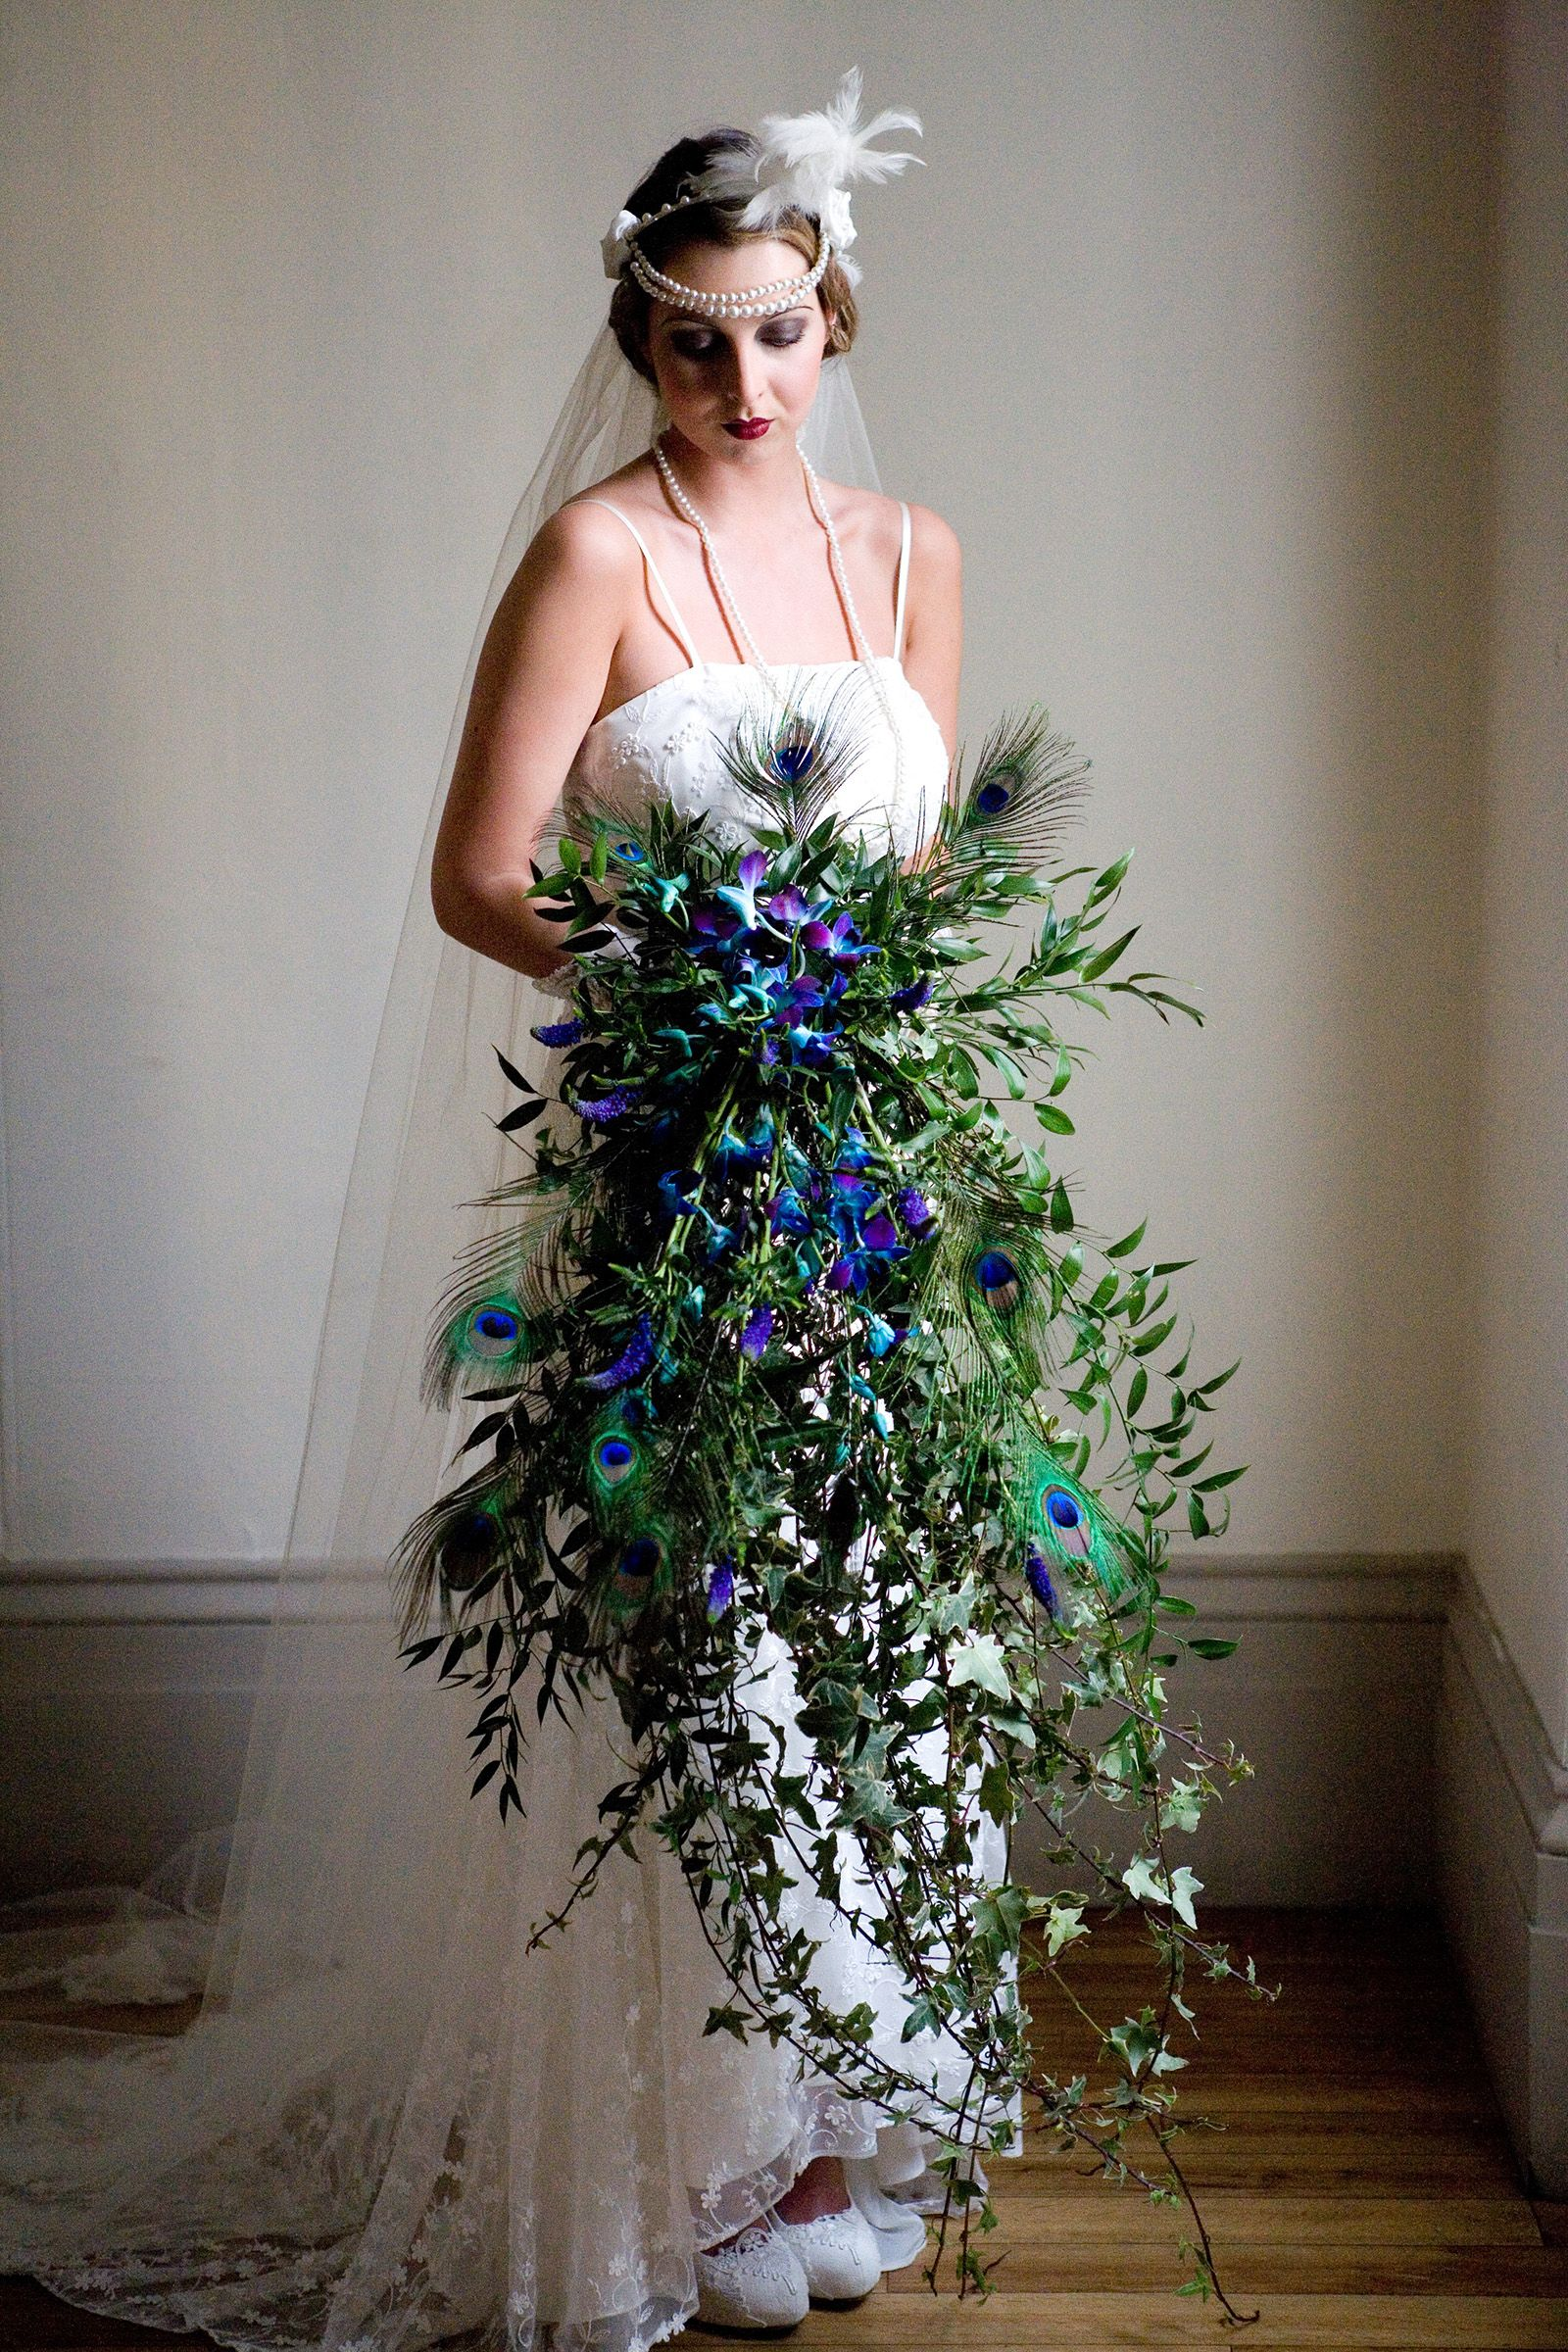 We Are Loving This Gatsby Themed Over The Top Wedding Bouquet With Pea Feathers